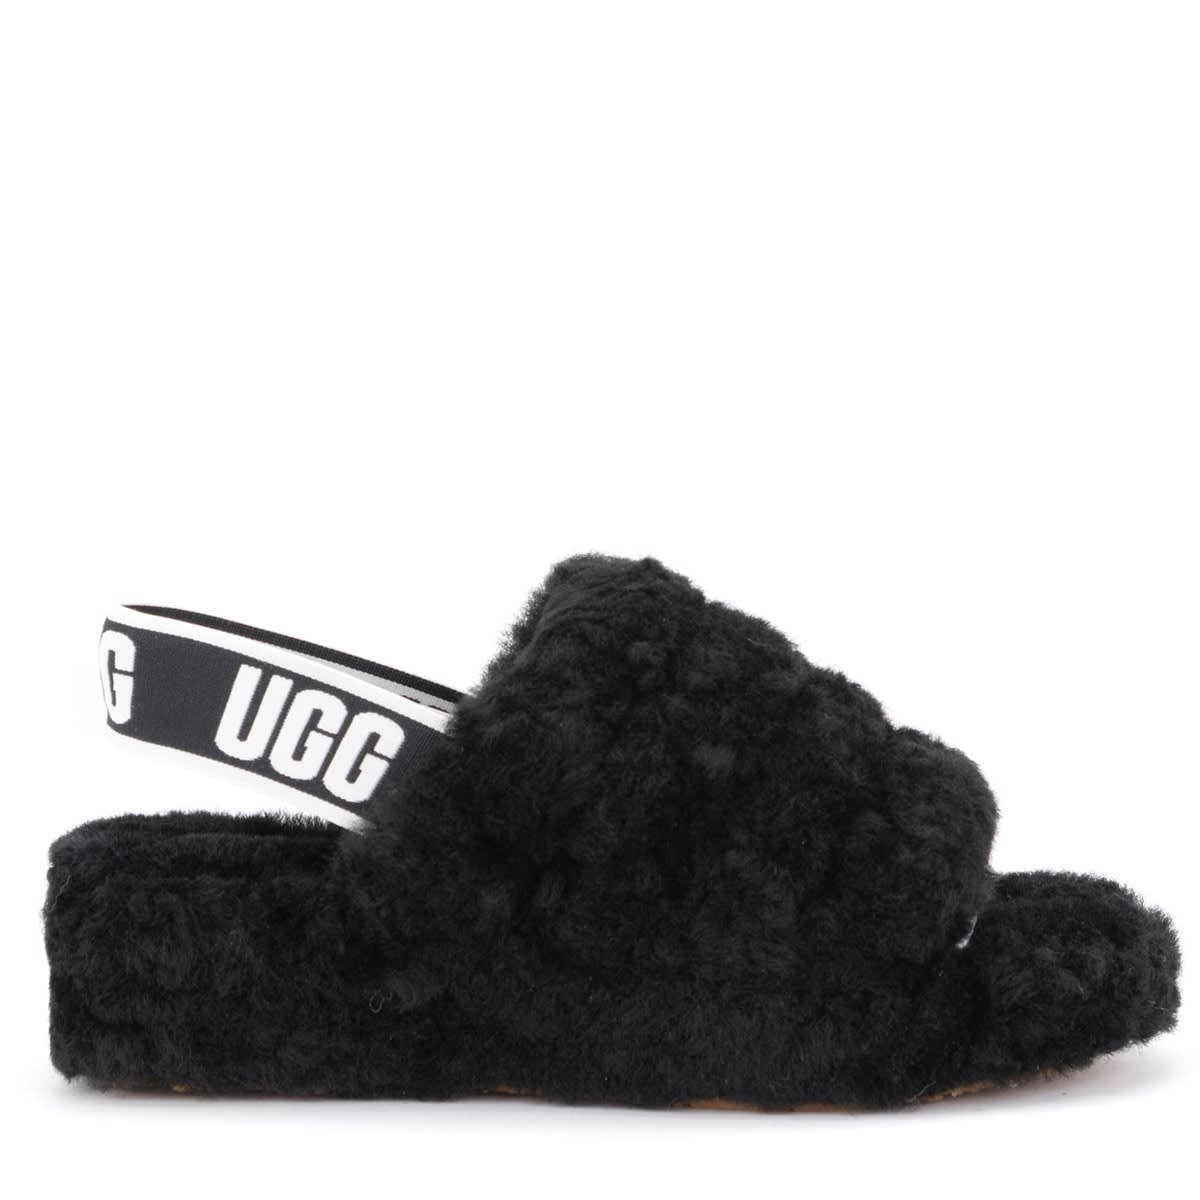 Ugg Fluff Yeah Sandal Slipper Made Of Soft Black Leather